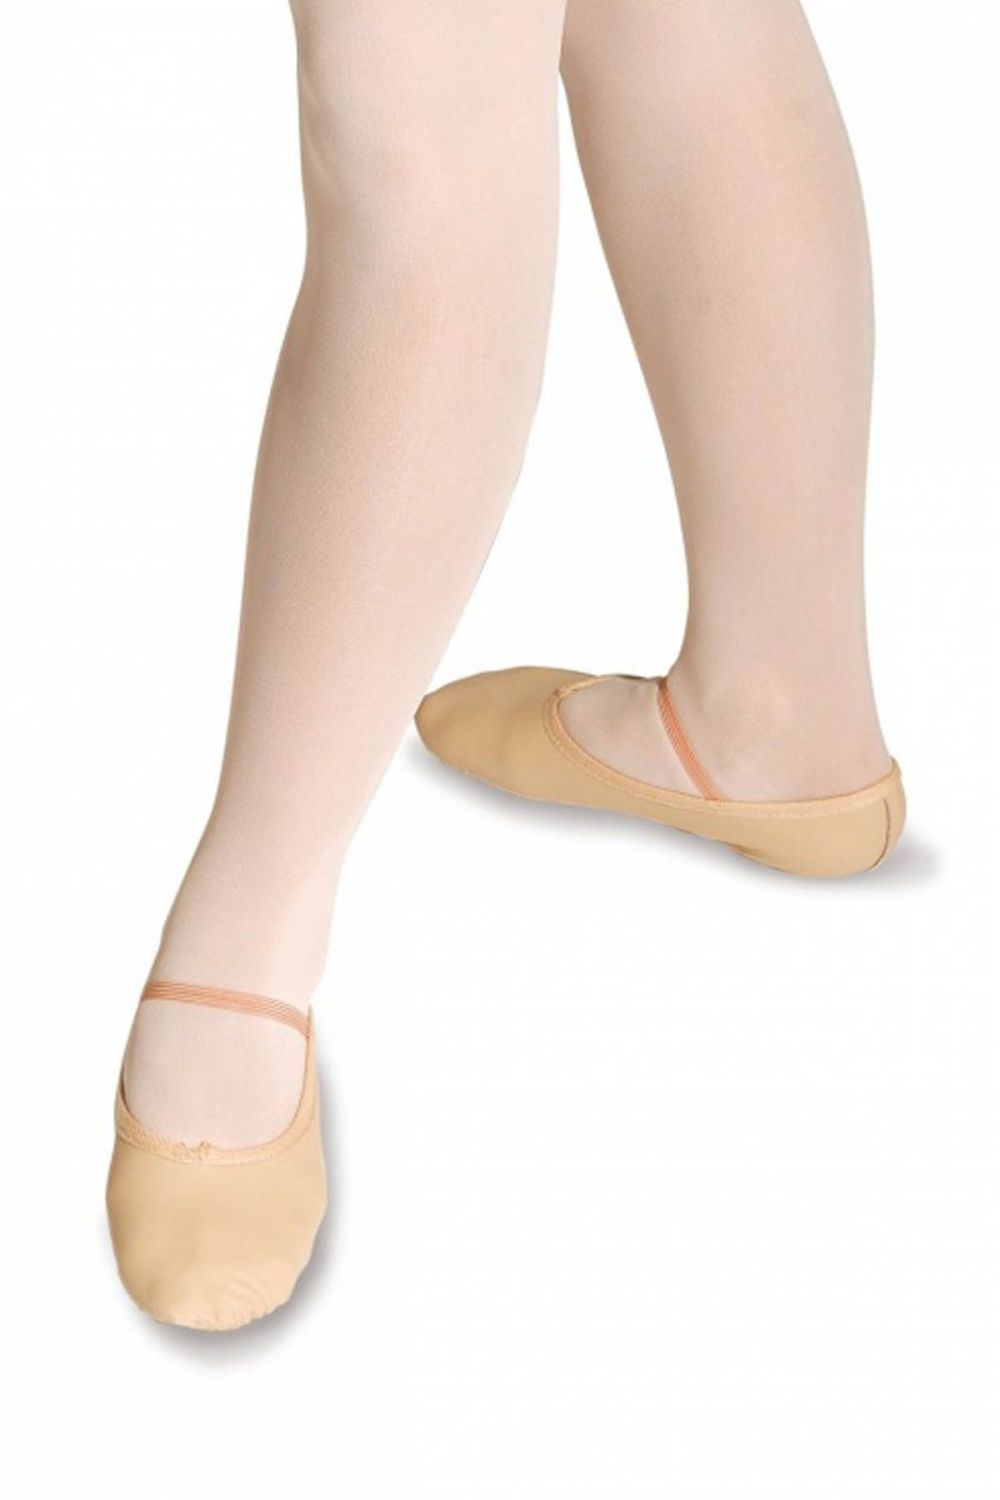 Wide Fit Full Sole Ballet Shoe (Childs 9 - Adult 5.5)